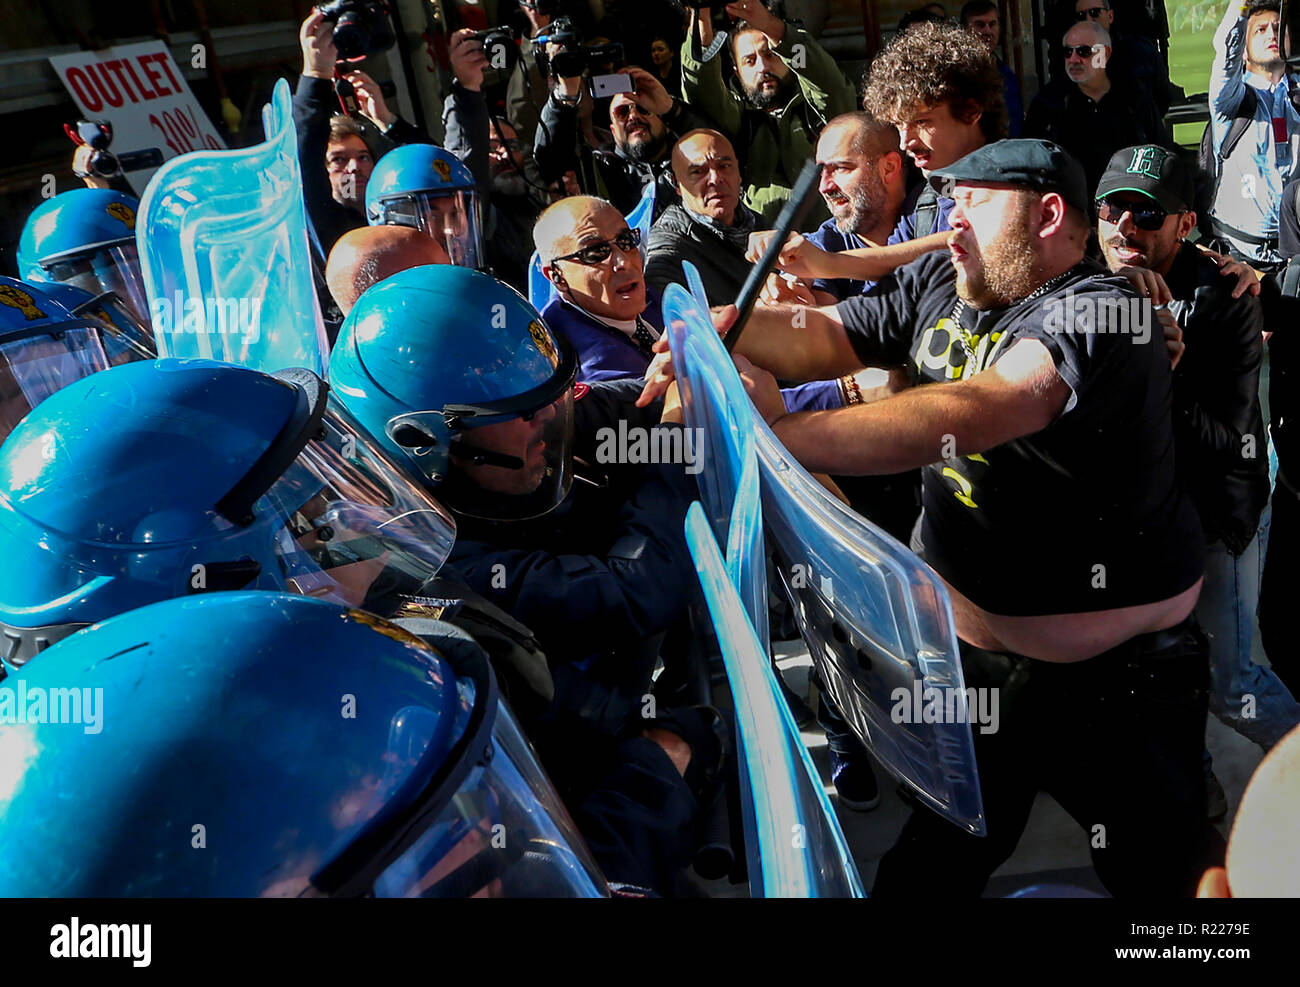 Naples, Italy. 15th November, 2018. Clashes between protesters and police at the Umberto gallery in Naples during the summit in the prefecture of Interior Minister Matteo Salvini an activist wounded Credit: Antonio Balasco/Alamy Live News - Stock Image